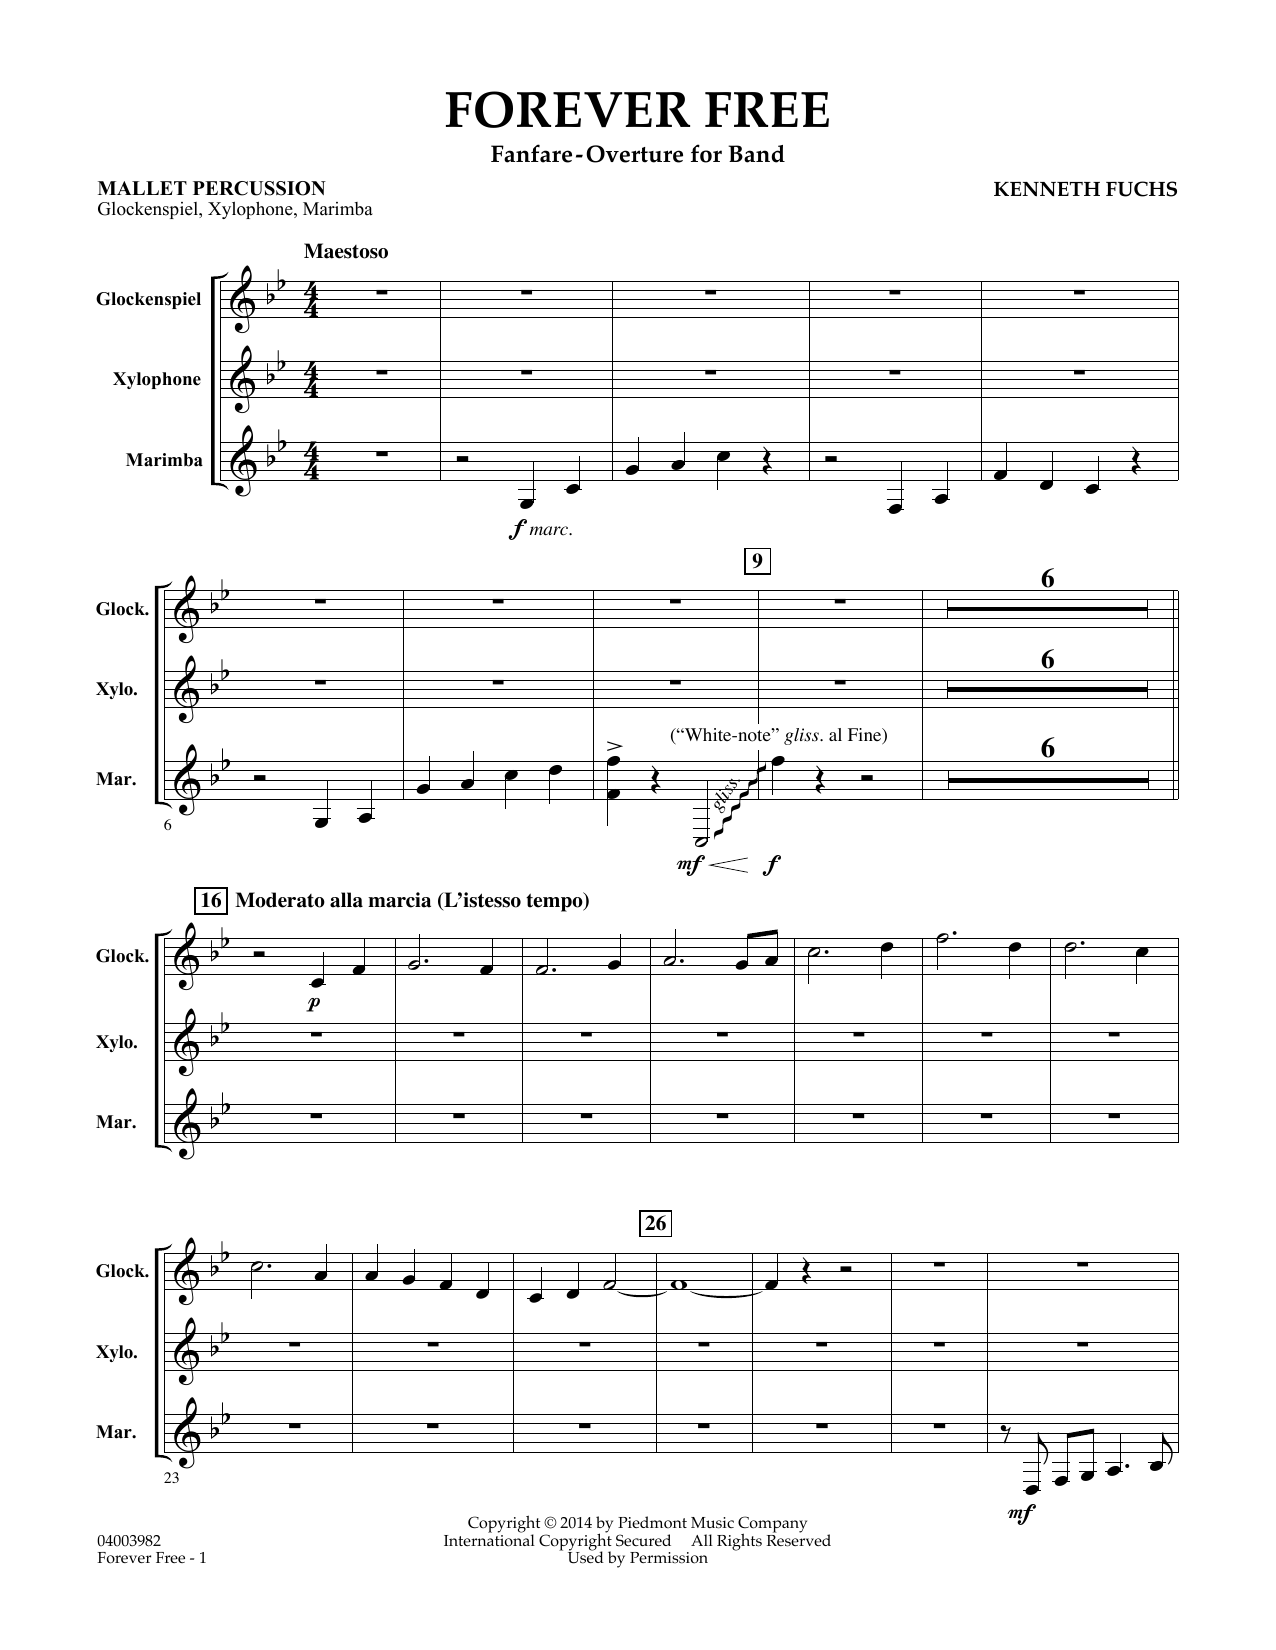 Forever Free - Mallet Percussion Sheet Music